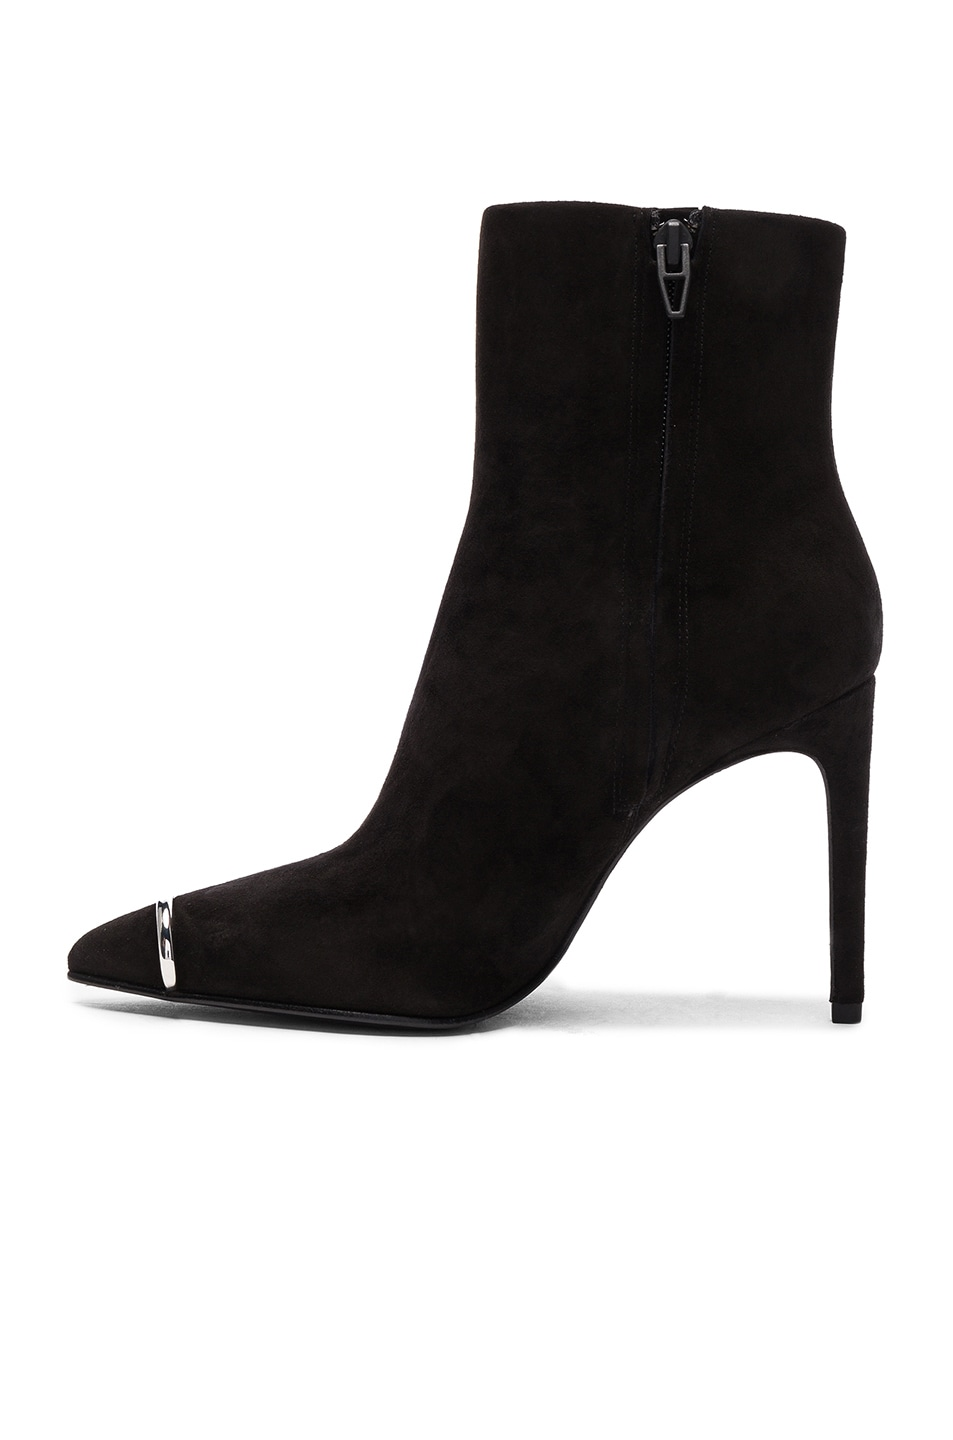 Image 5 of Alexander Wang Suede Kinga Boots in Black Suede